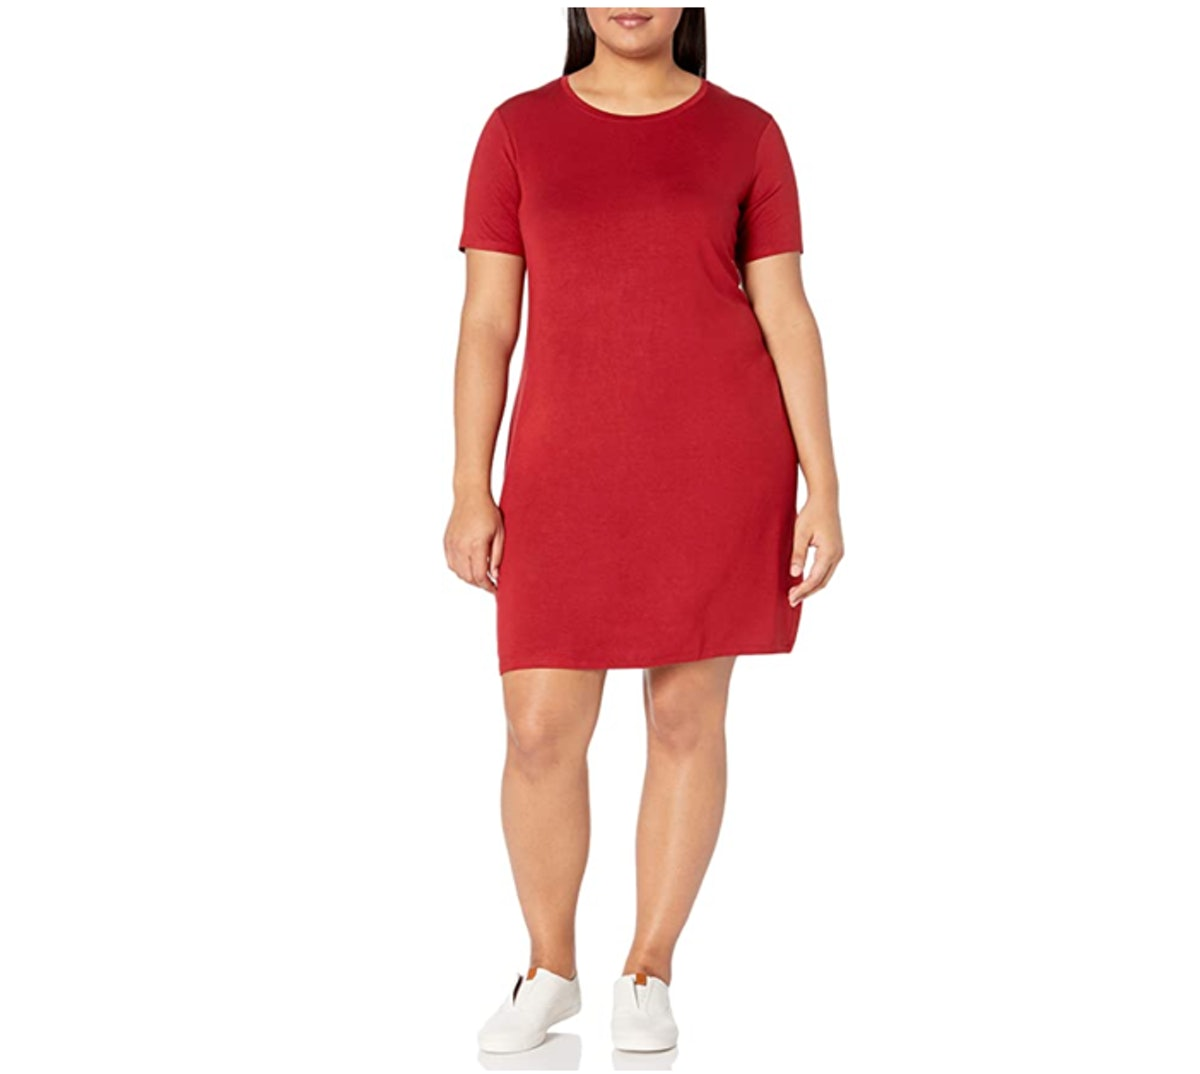 Daily Ritual Plus Size Scoop Neck Dress